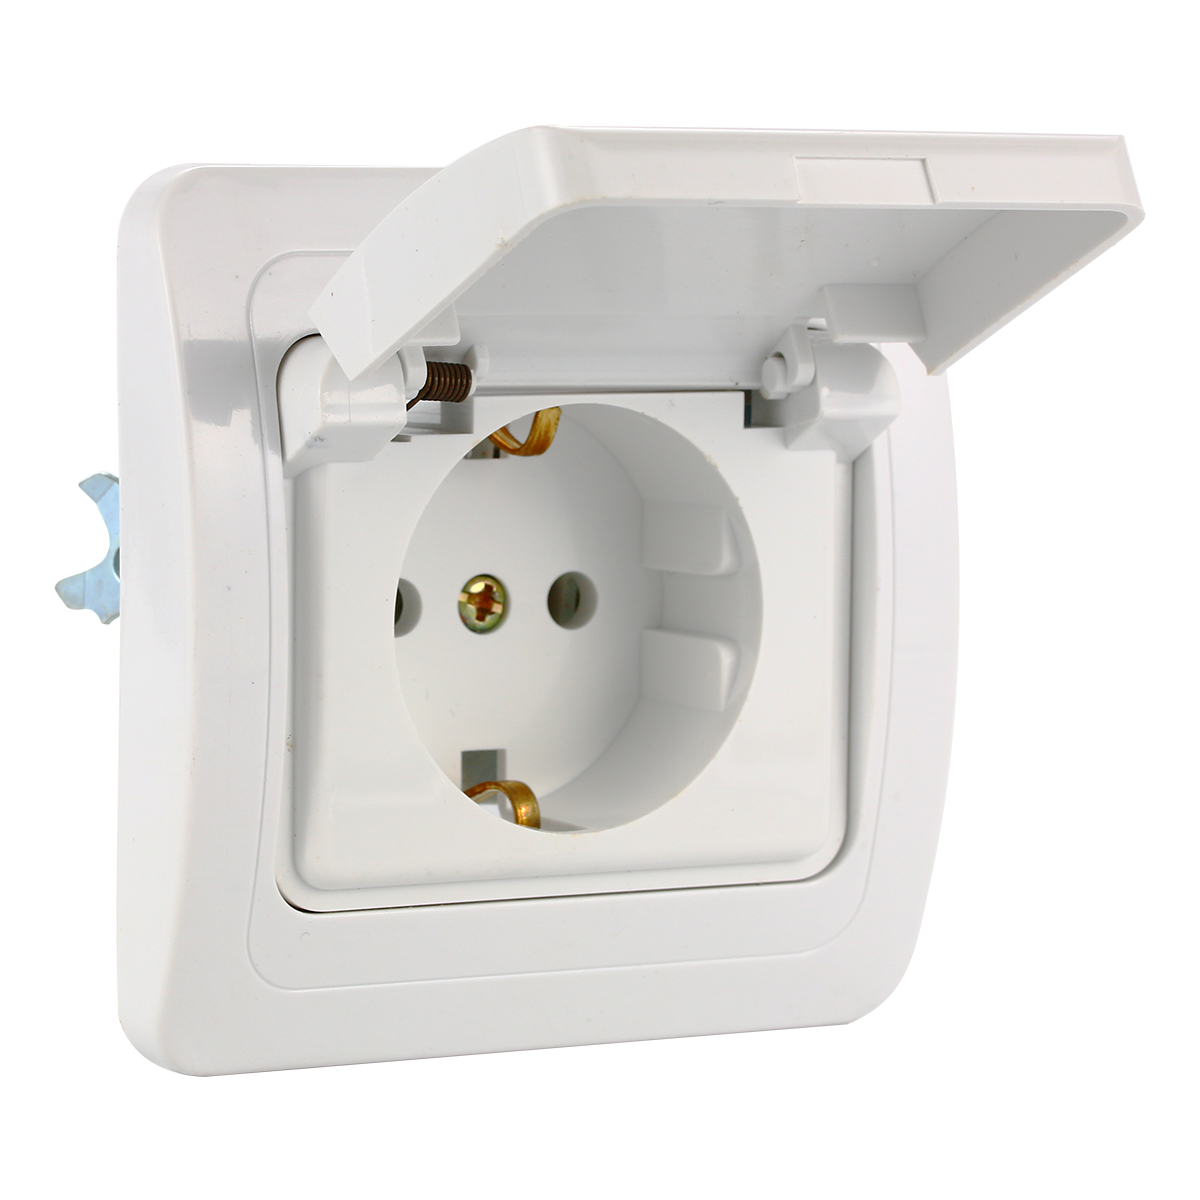 aliexpress com buy 16a 250v korea wiring receptacle power outlet aliexpress com buy 16a 250v korea wiring receptacle power outlet schuko european ac power socket bi132 from reliable ac power socket suppliers on